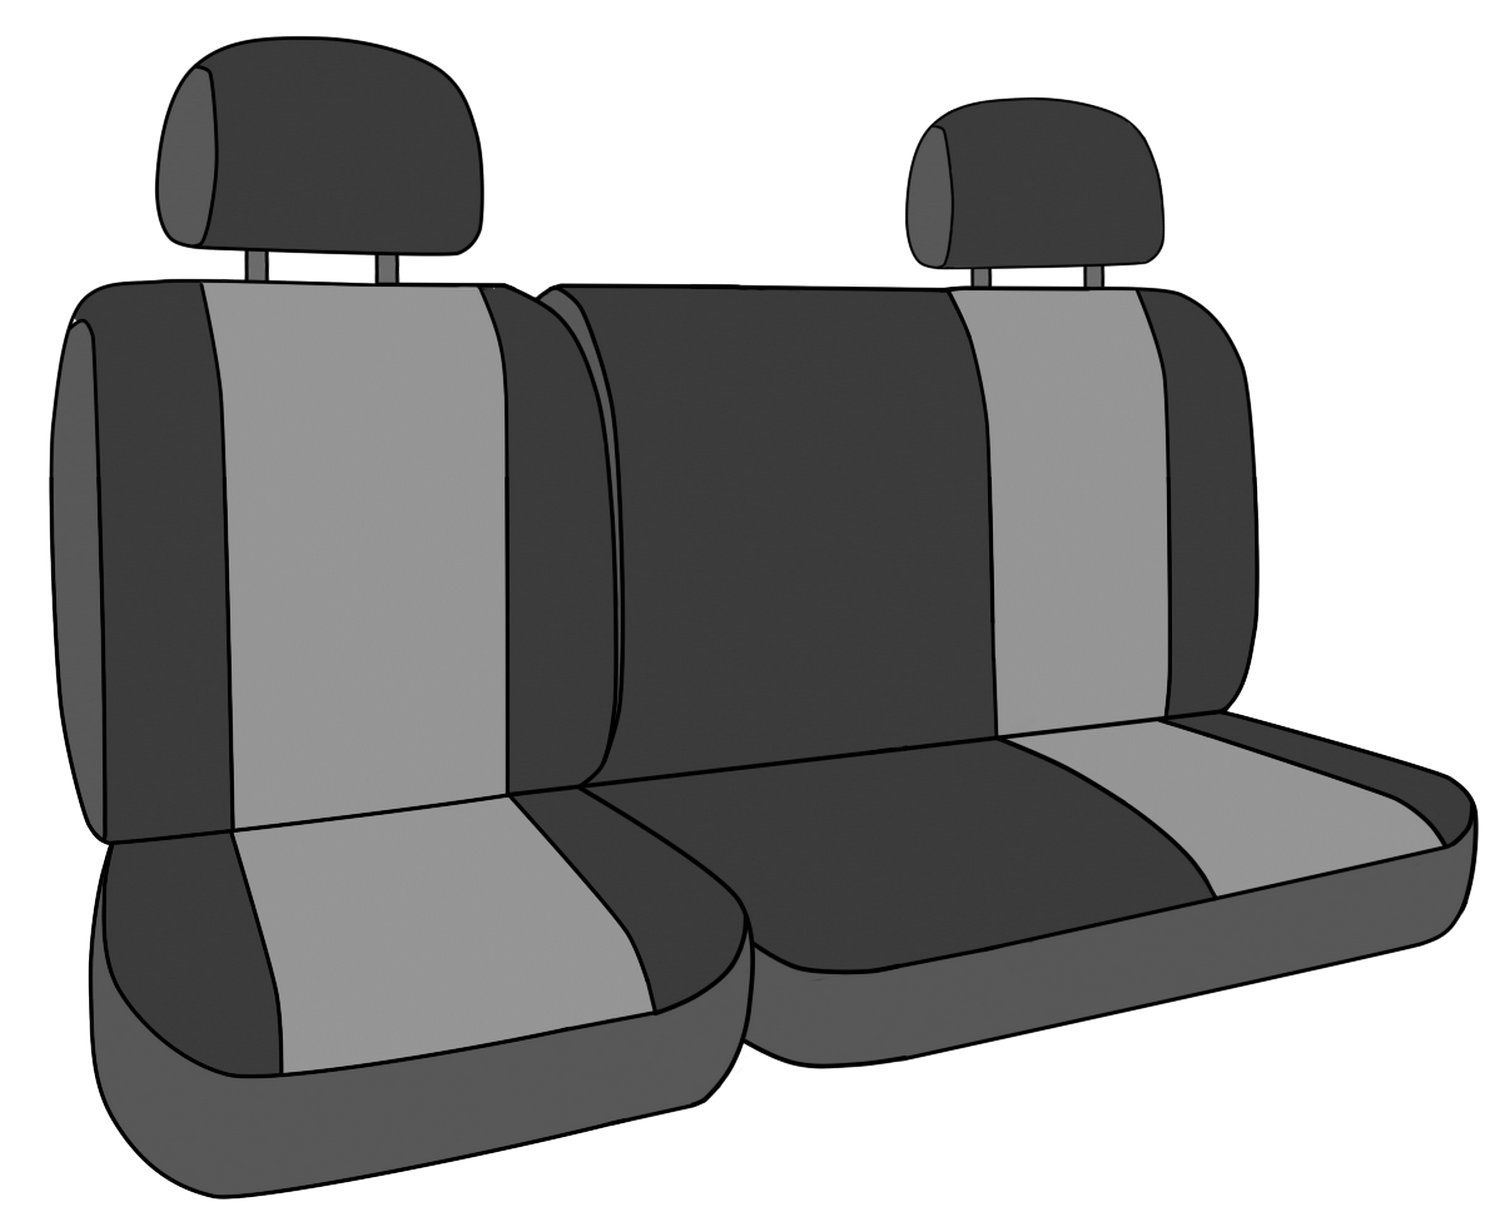 CalTrend Rear Row 60/40 Split Bench Custom Fit Seat Cover for Select Chevrolet Silverado/GMC Sierra Models - DuraPlus (Charcoal) by CalTrend (Image #2)